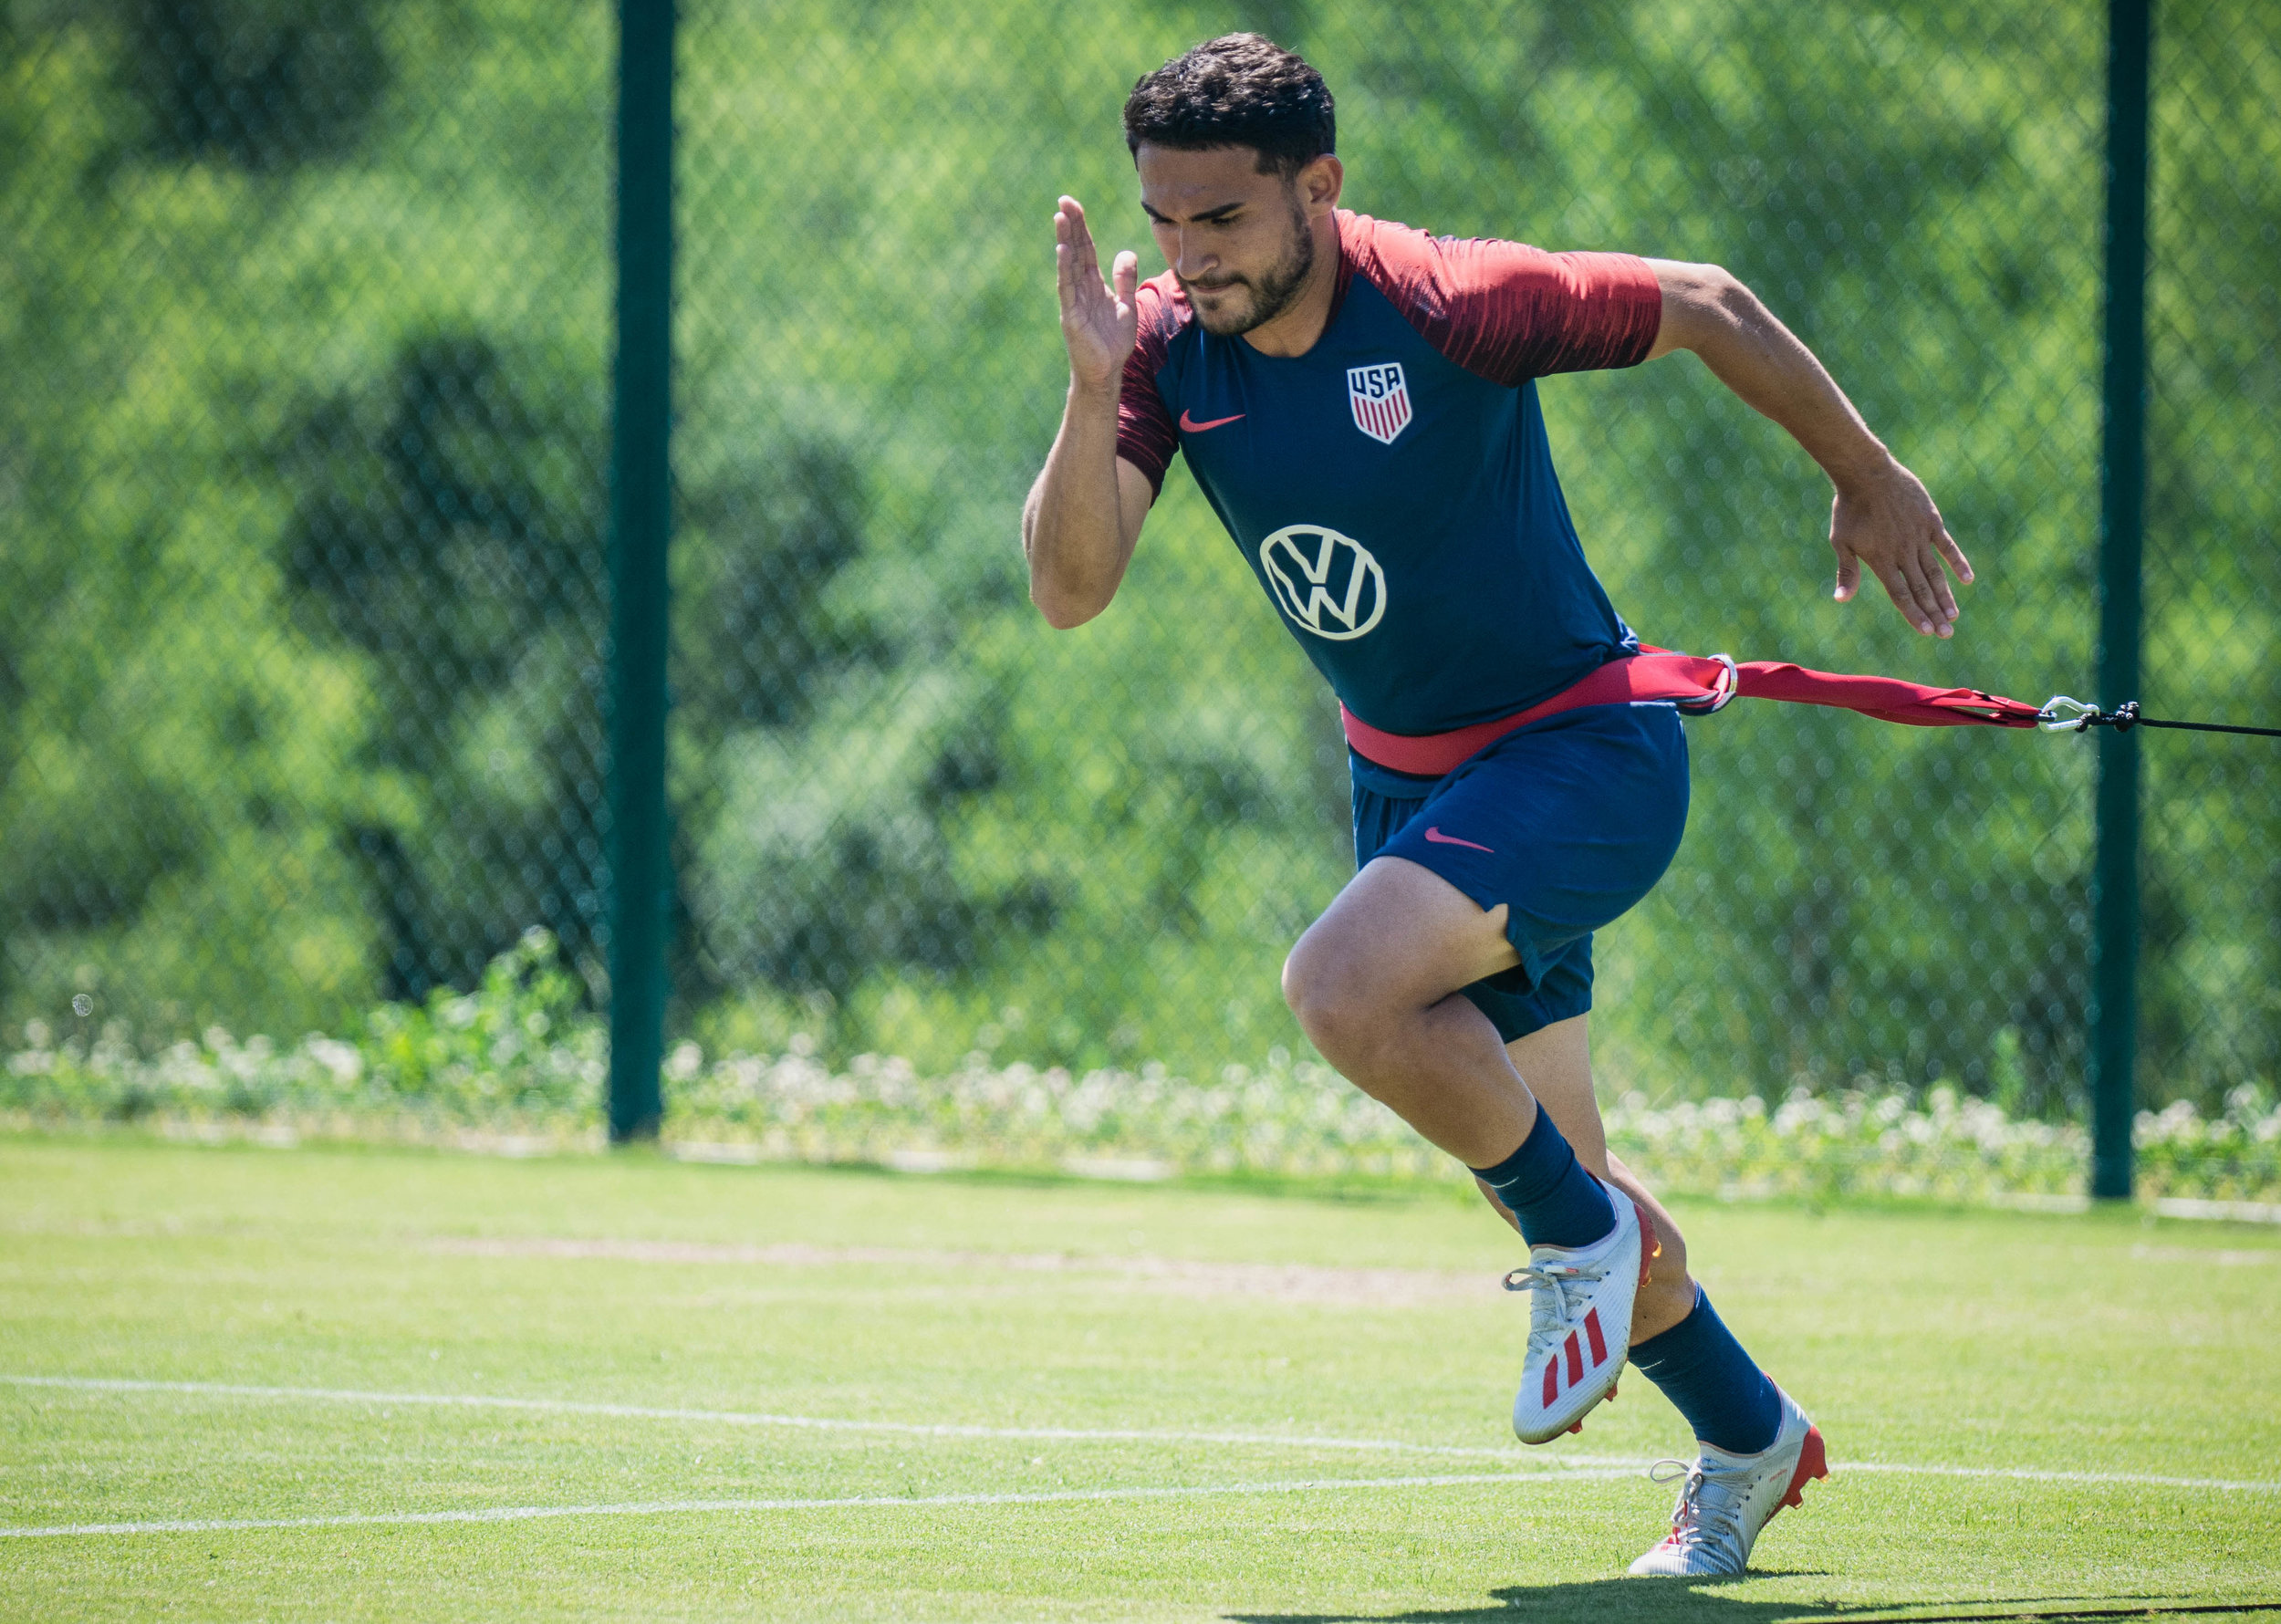 Cristian Roldan runs during the U.S. Men's National Team Gold Cup training session on Tuesday, June 25, 2019 at Pinnacle National Development Center in Kansas City, Kansas. The U.S. Men's National Team prepare to face off with Trinidad and Tobago in the final game of the group stage at the Gold Cup.